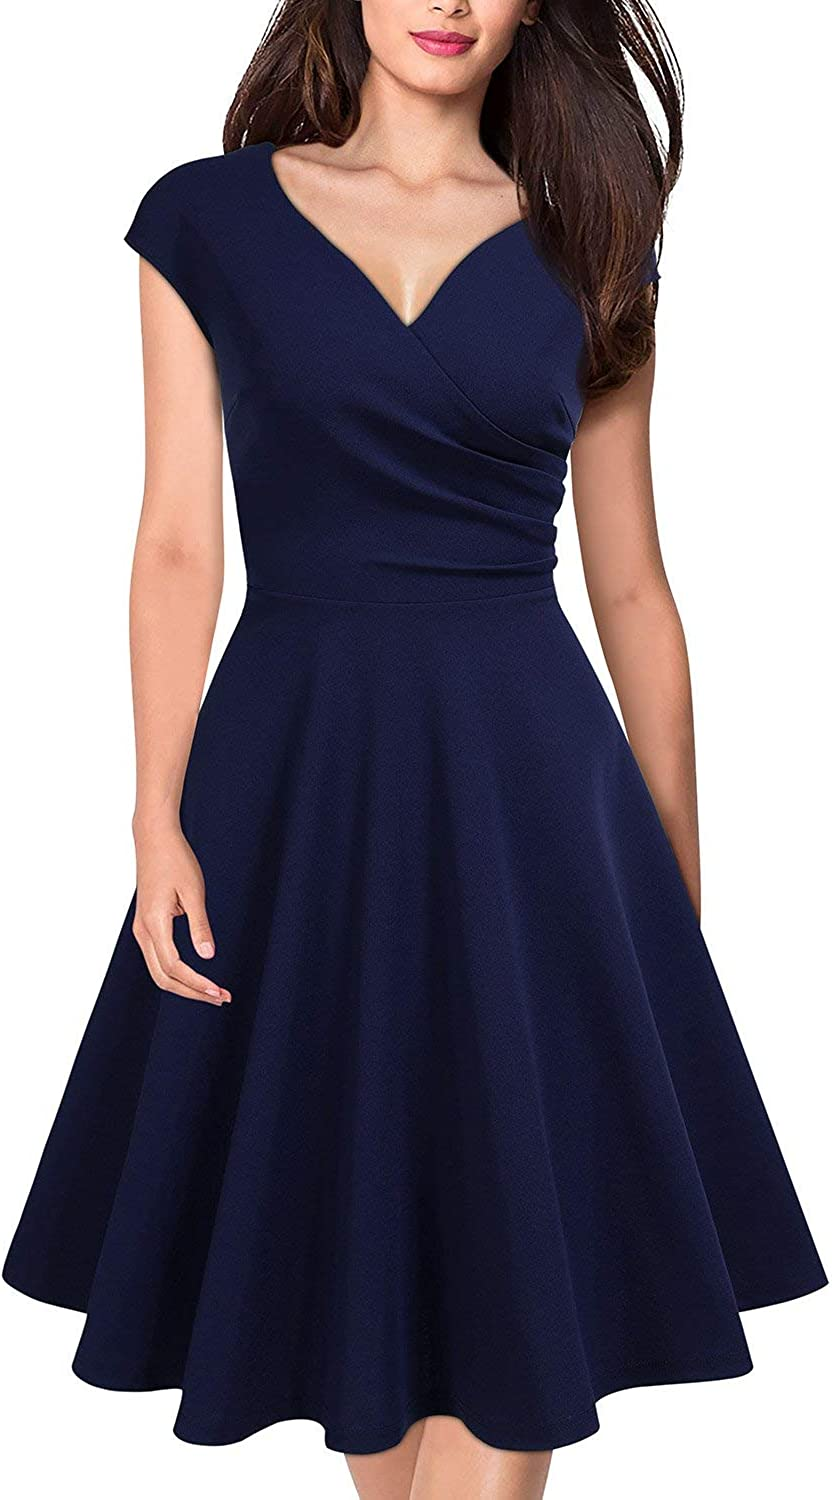 MISSMAY Women's Retro Deep V Neck Cap Sleeve Cocktail Party Fit and Flare Dress